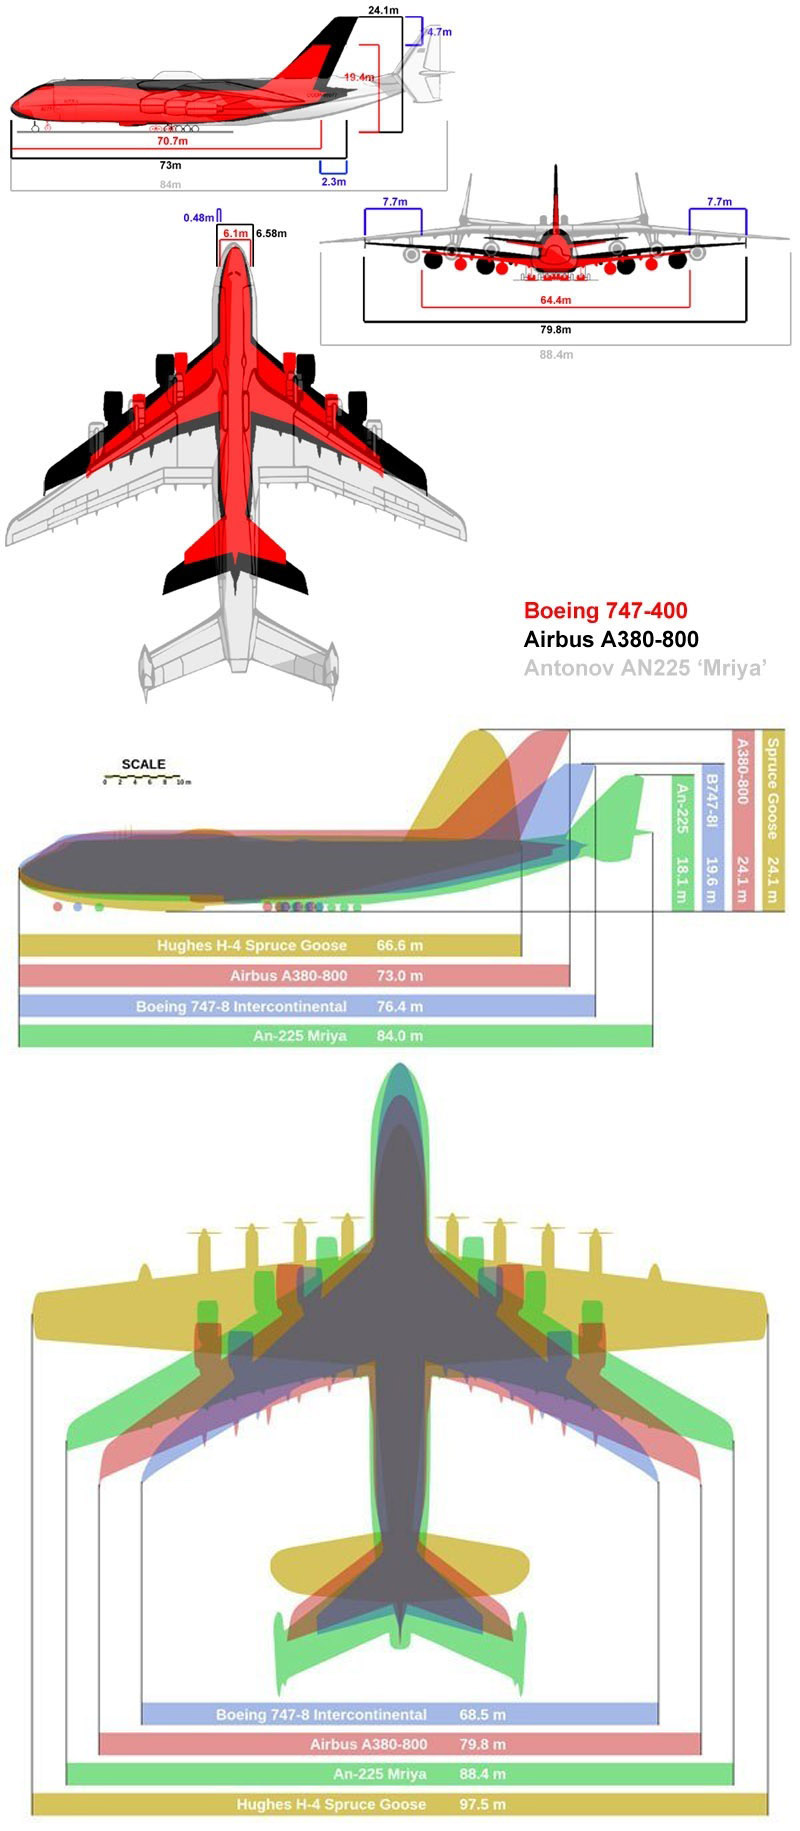 Antonov An-225 Mriya : antonov, an-225, mriya, Antonov, An-225, World's, Largest, Aircraft, Blowing, Facts, Aviation, Humor